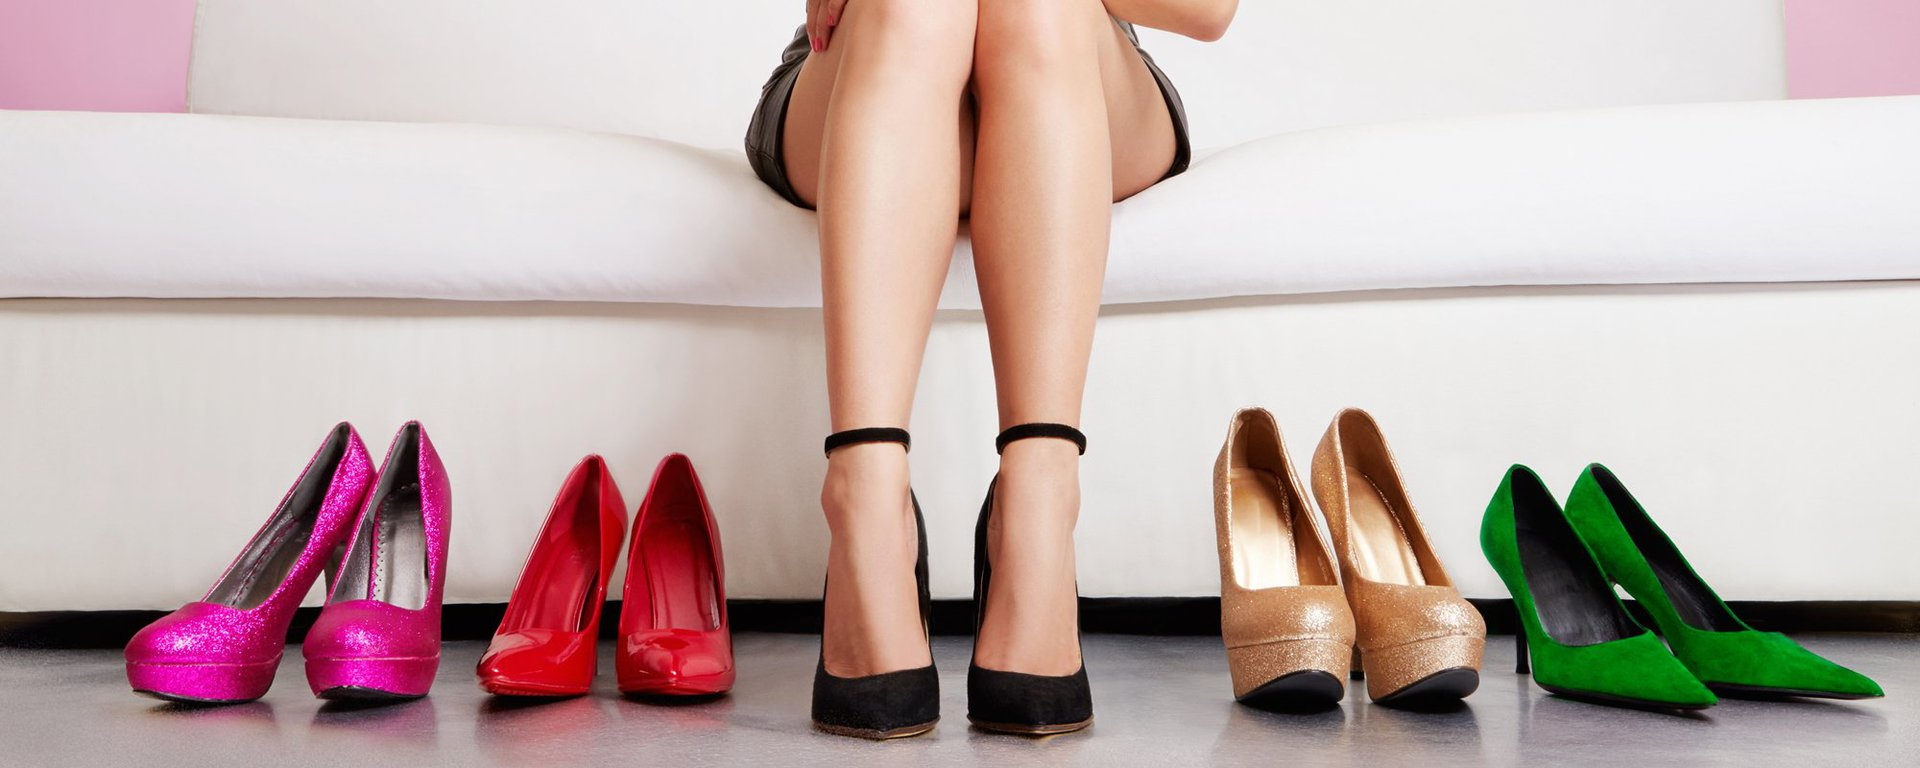 Are There Shoes For Flat Feet Women Available? How Can I Make A Purchase?